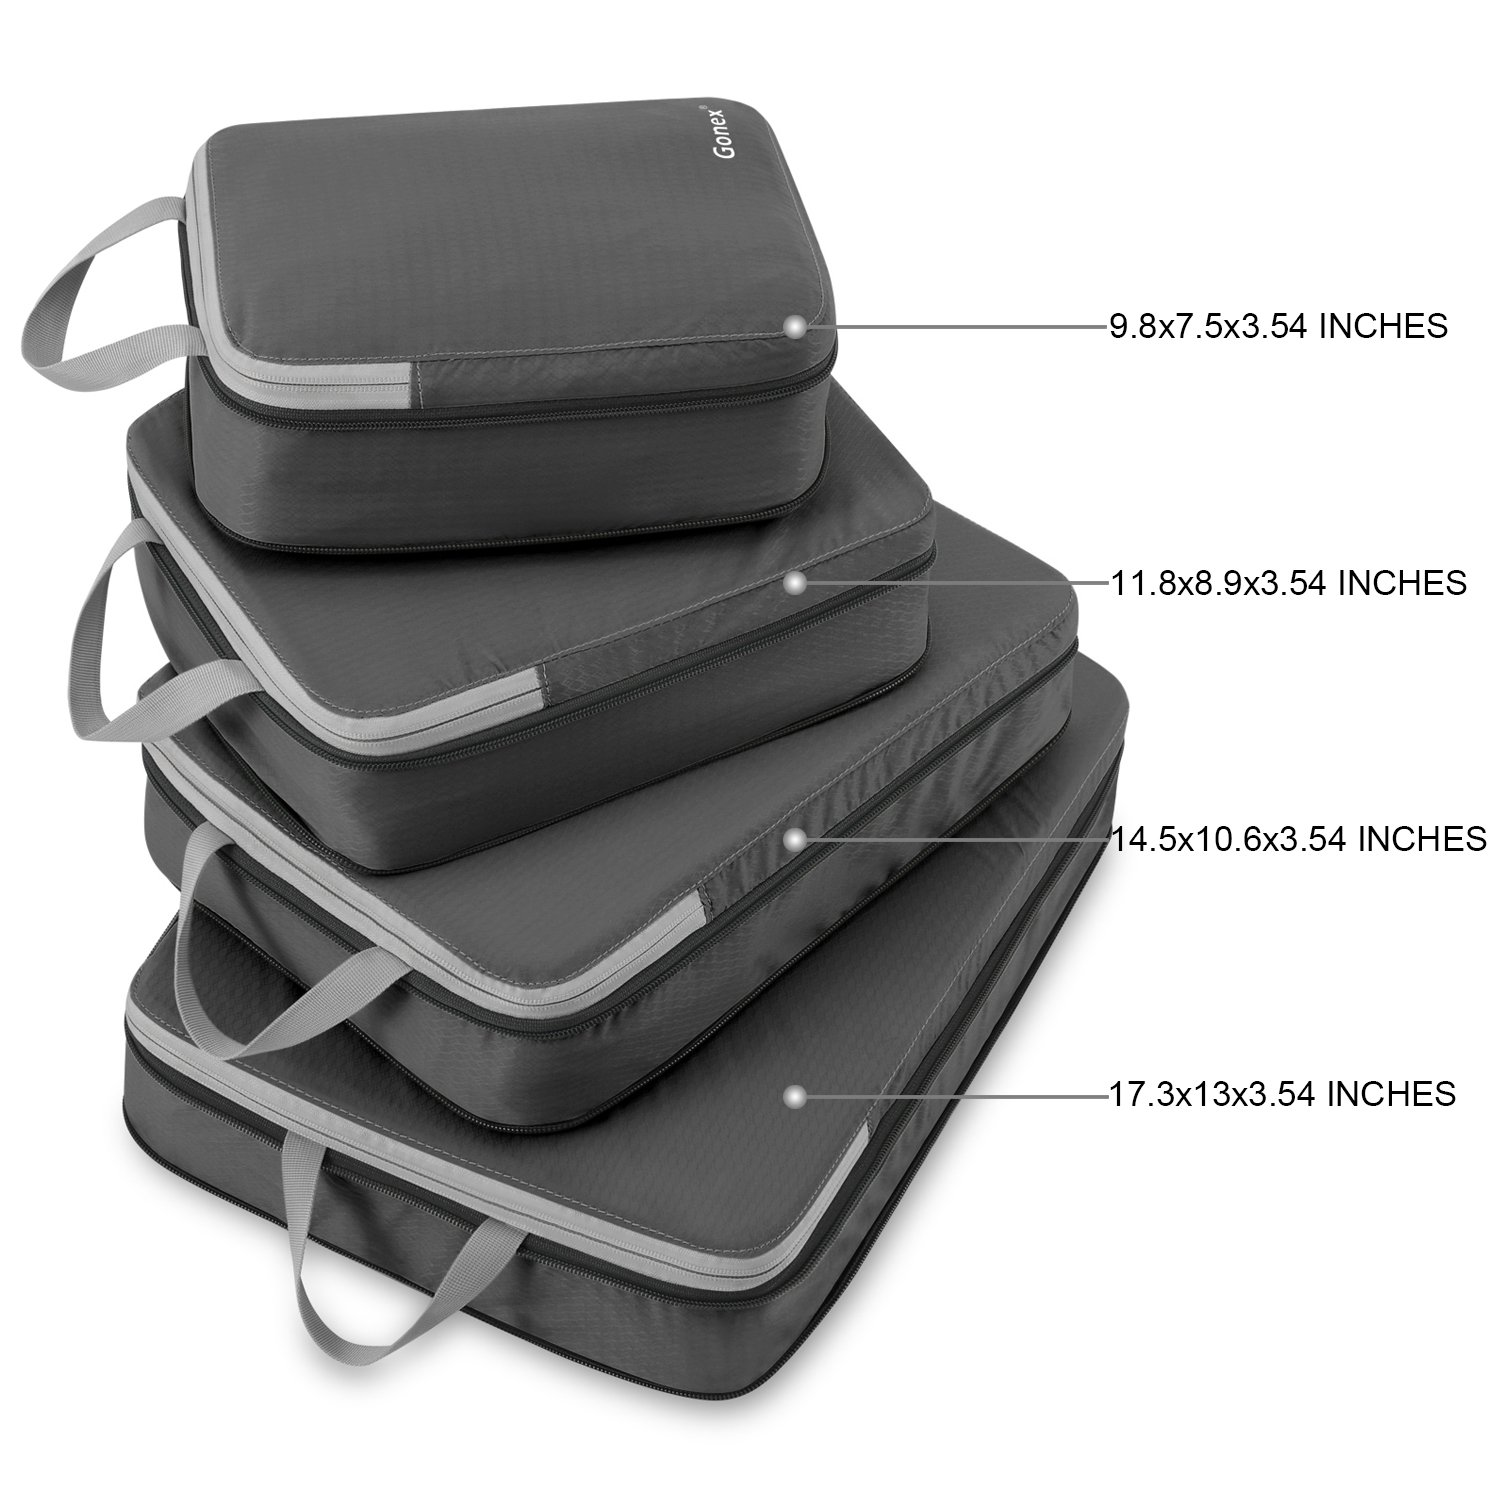 Gonex Compression Packing Cubes, Expandable Packing Organizers 4pcs (Deep Gray) by Gonex (Image #2)